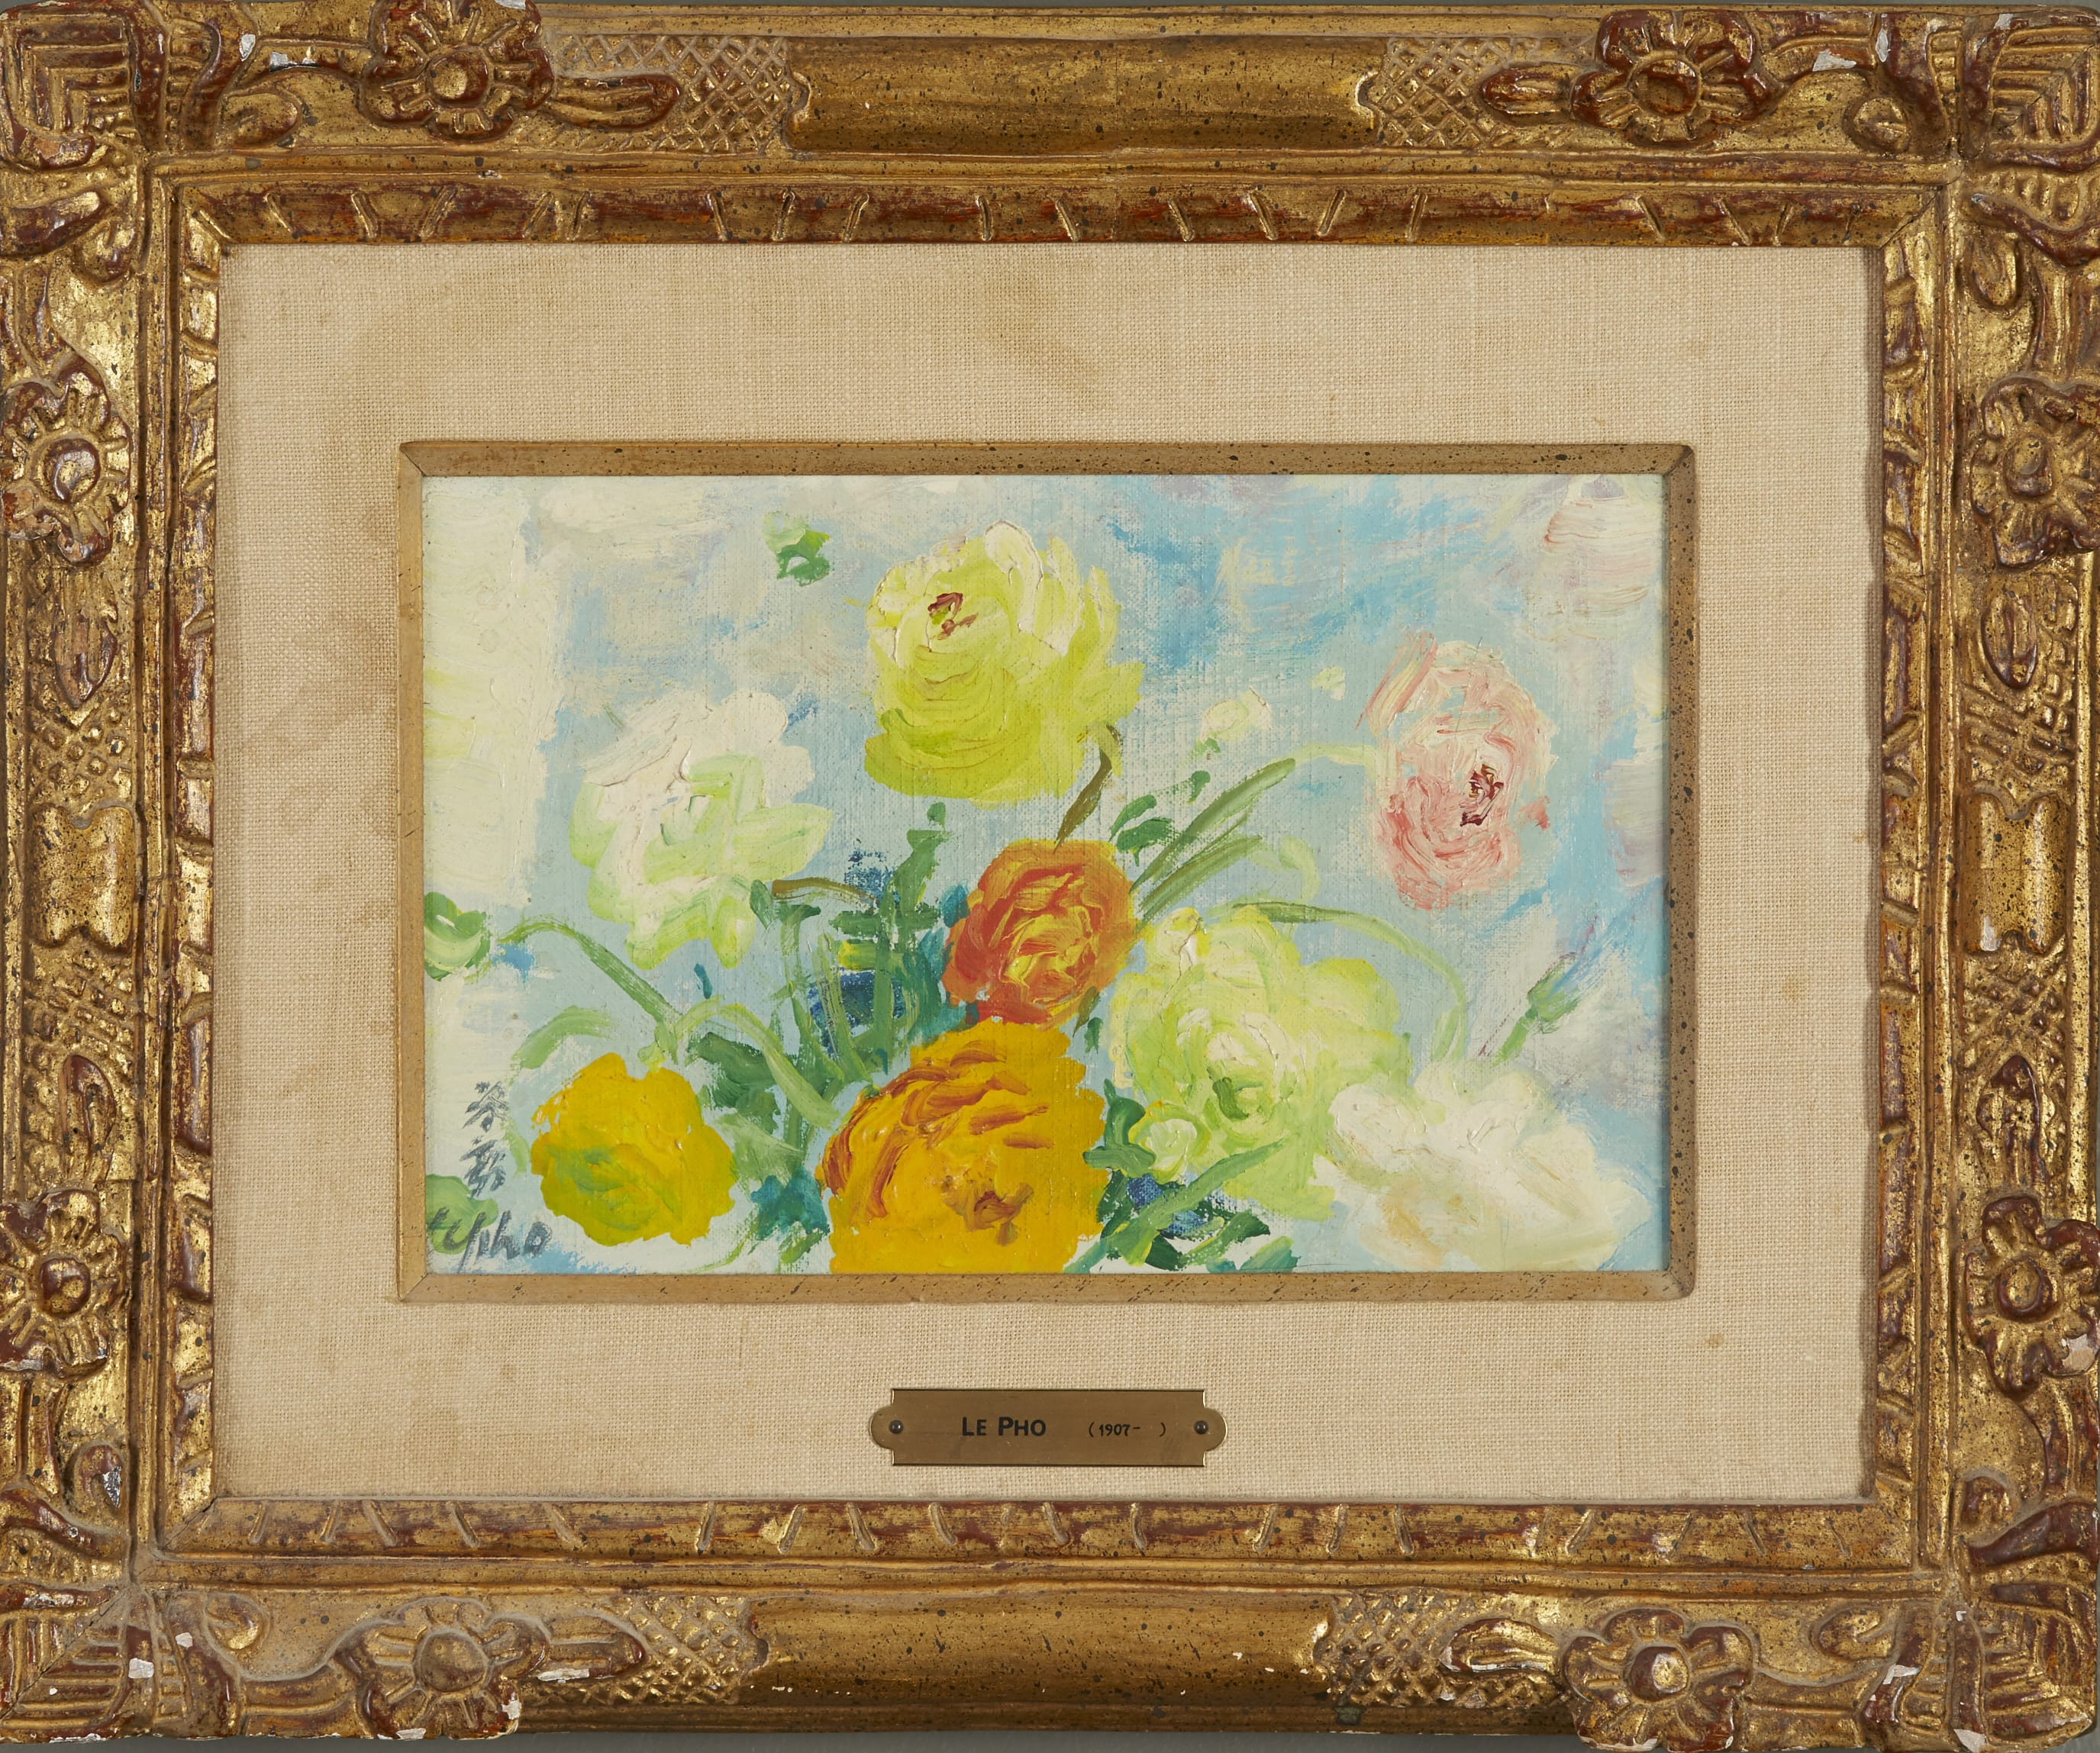 Lot 024: Le Pho Flowers Oil on Canvas